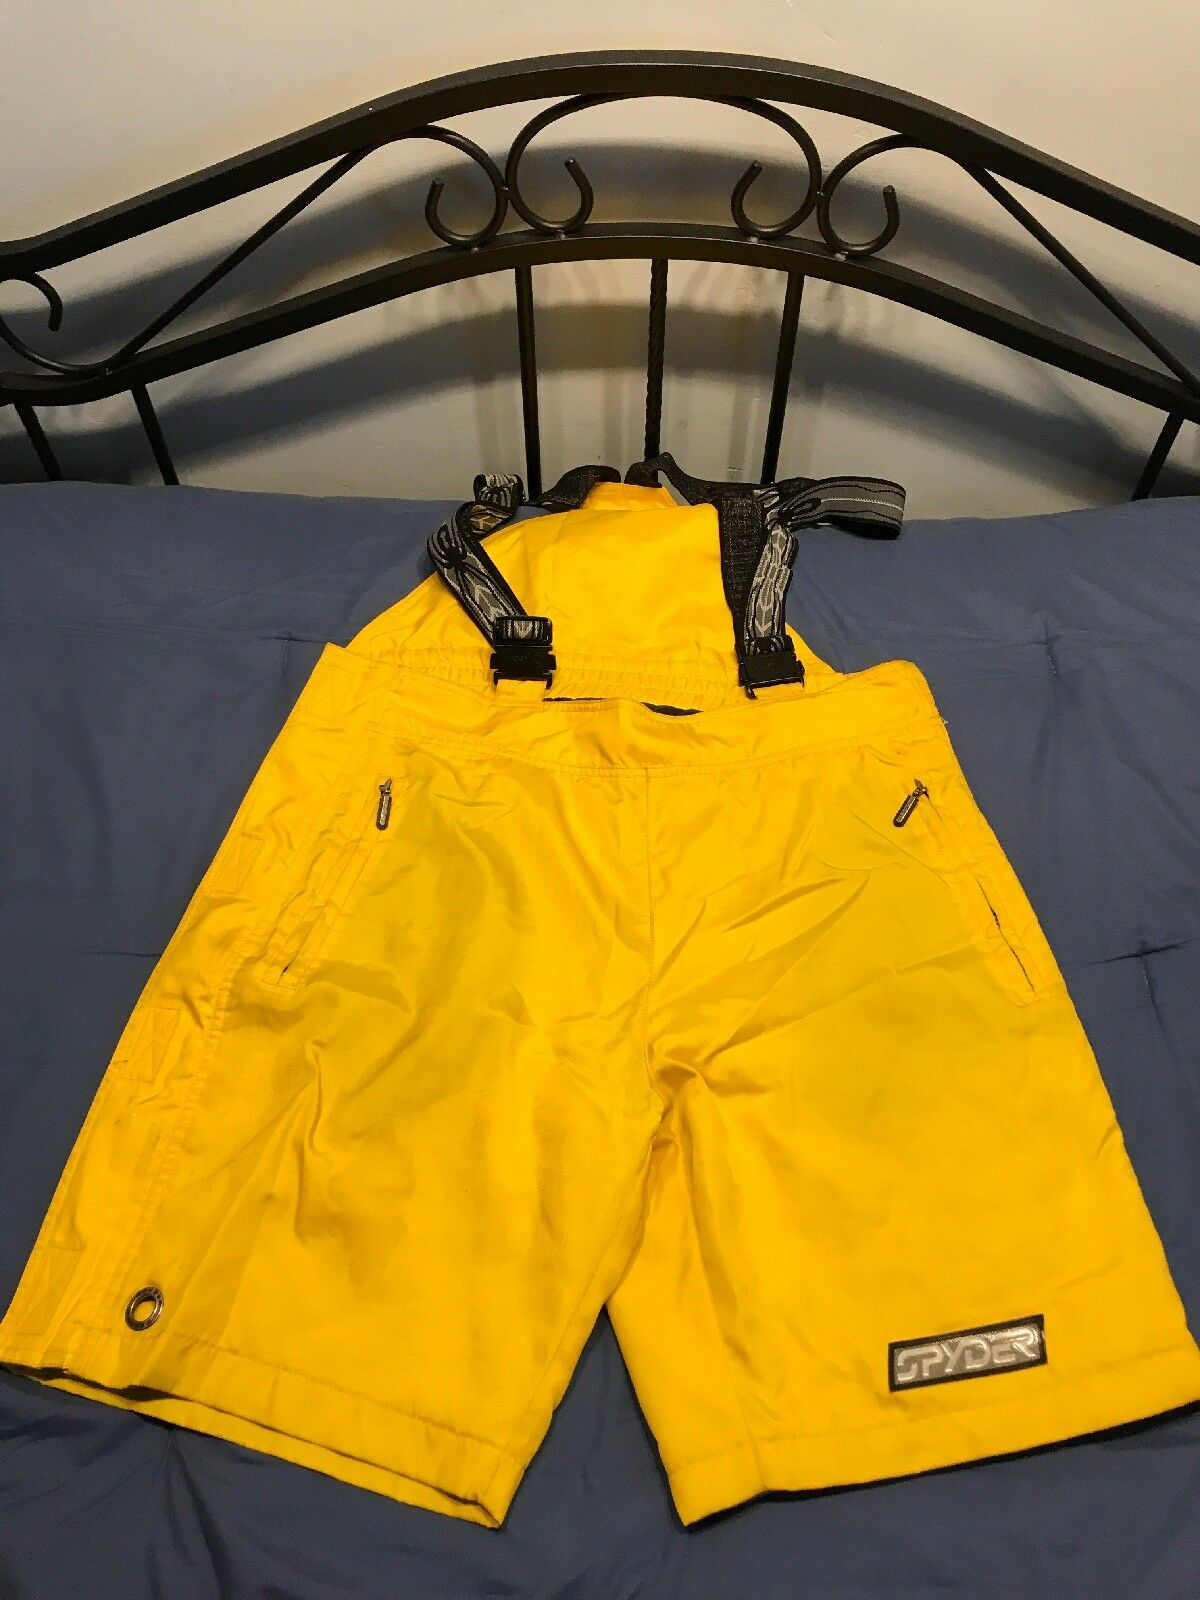 IMPERFECT Spyder Ski Snowboard Shorts Yellow Thinsulate Suspenders Large SC8